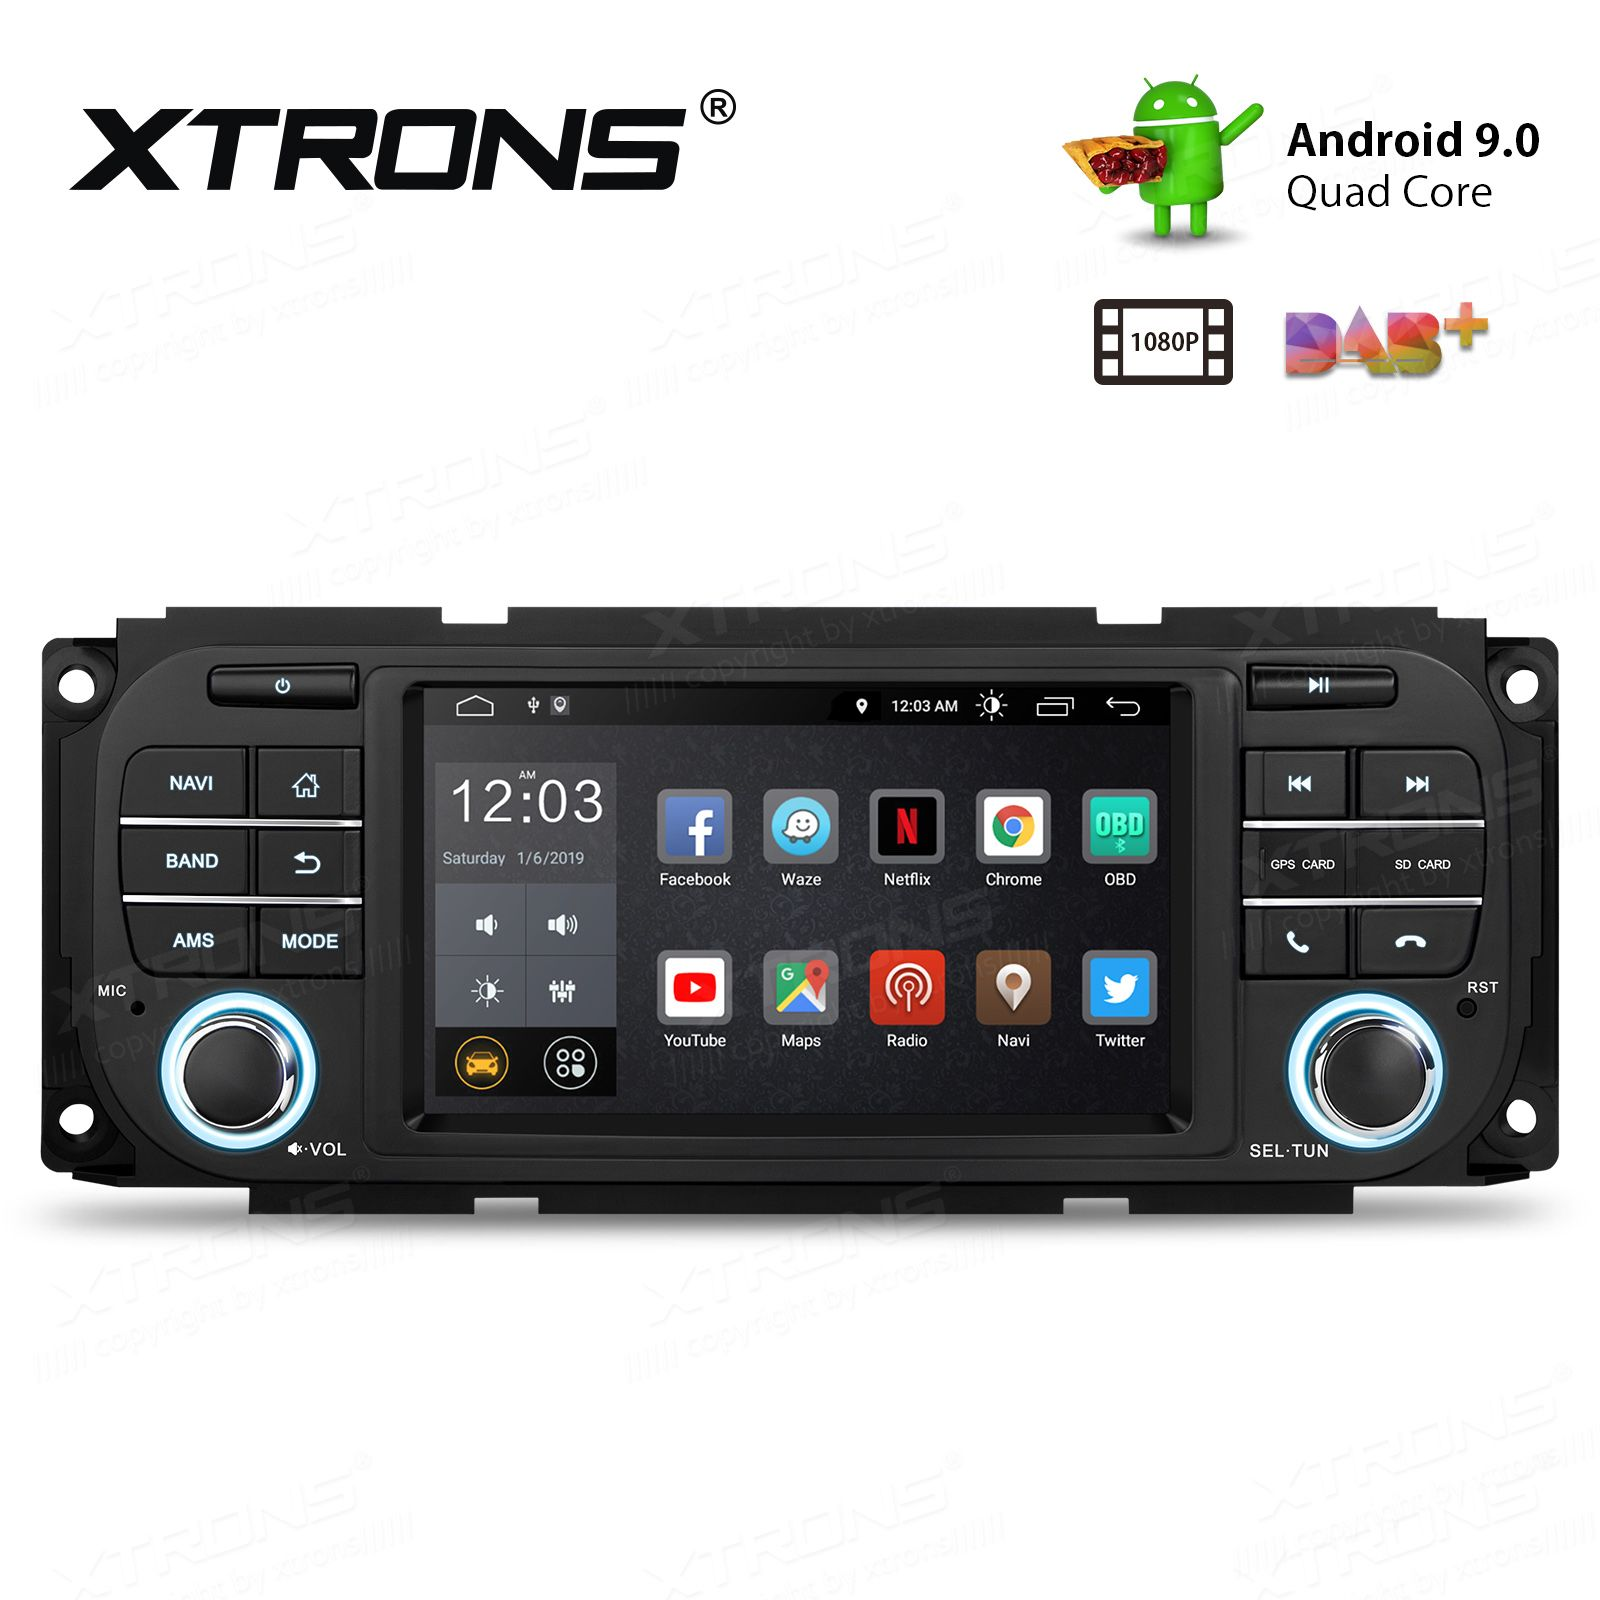 Android 9 0 With Full Rca Output 5 U0026 39  U0026 39  Hd Screen Multifunctional Android Car Stereo Custom Fit For